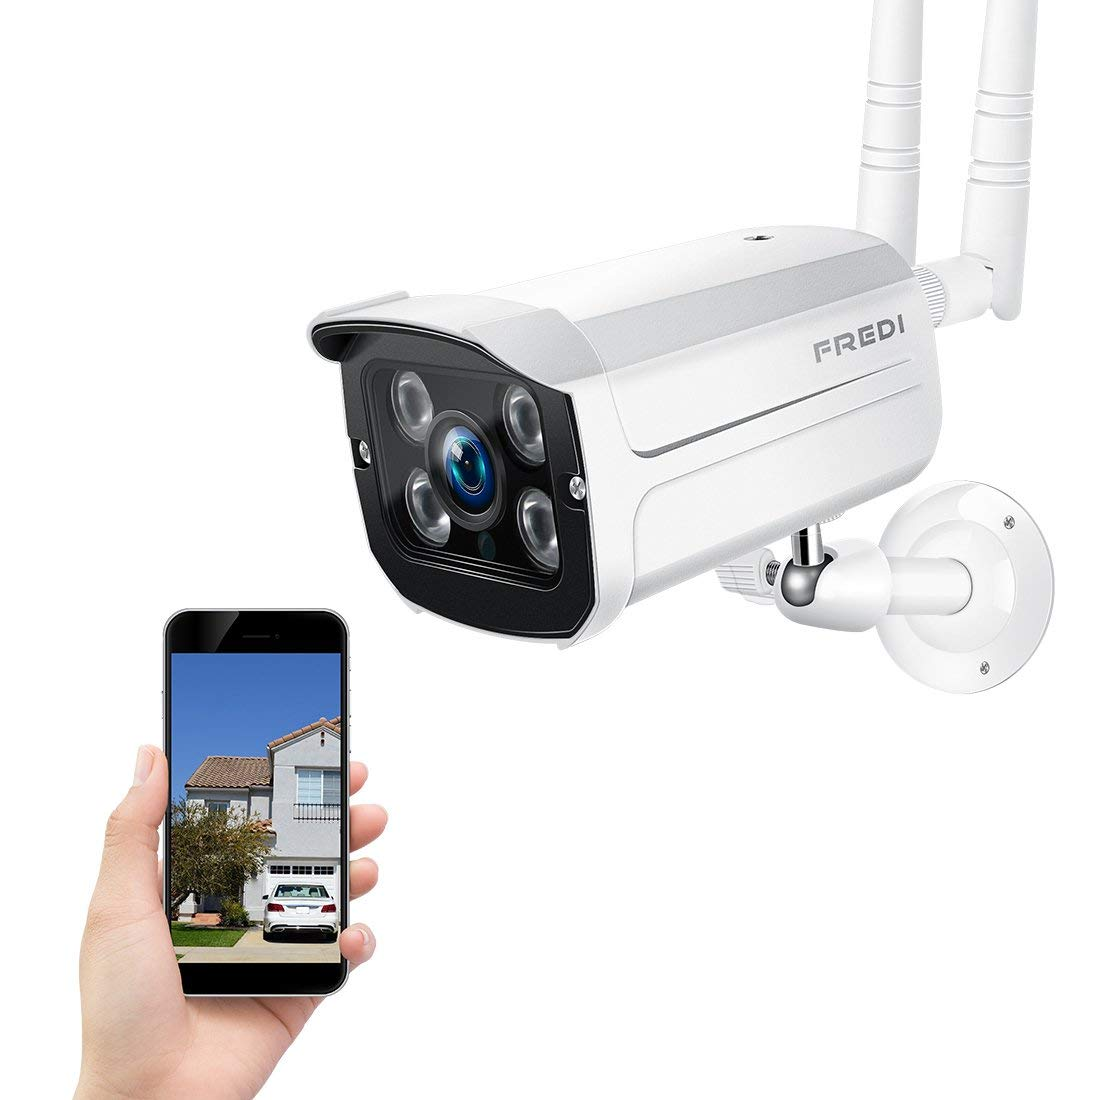 Camera De Surveillance Sans Fil Exterieur Professionnel Wifi Camera Amazon Fredi